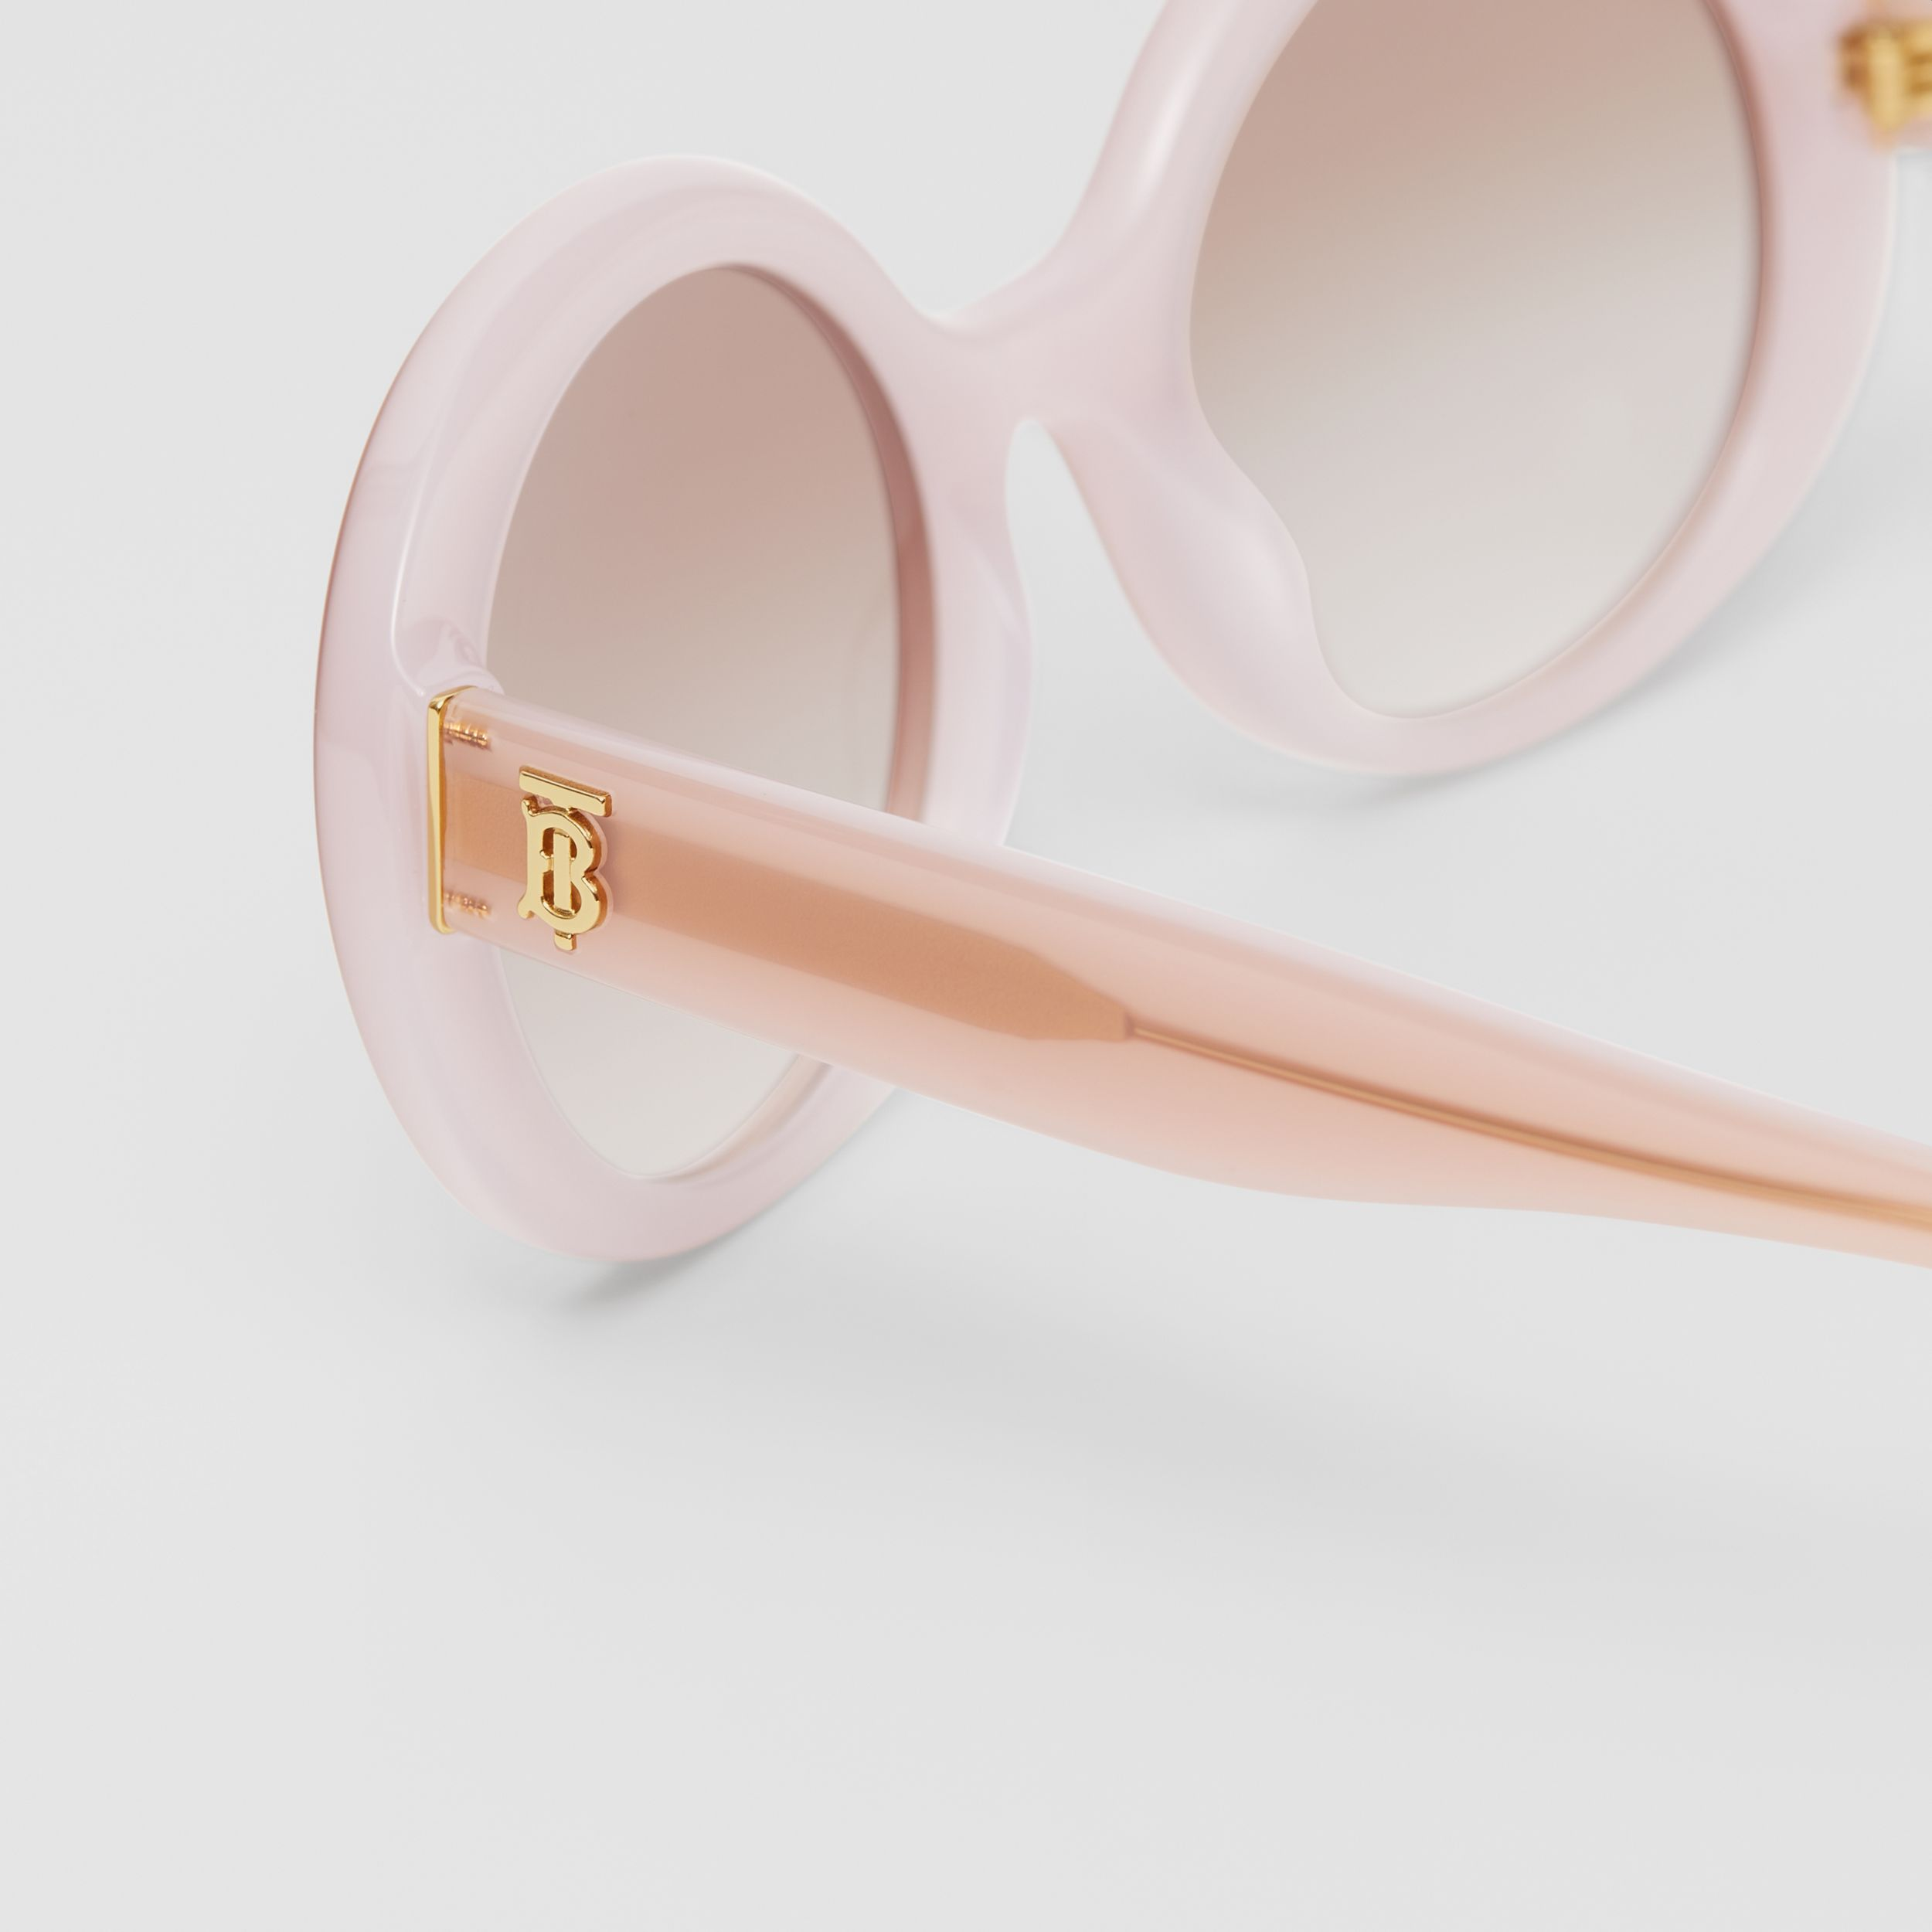 Oversized Round Frame Sunglasses in Opal Pink - Women | Burberry - 2